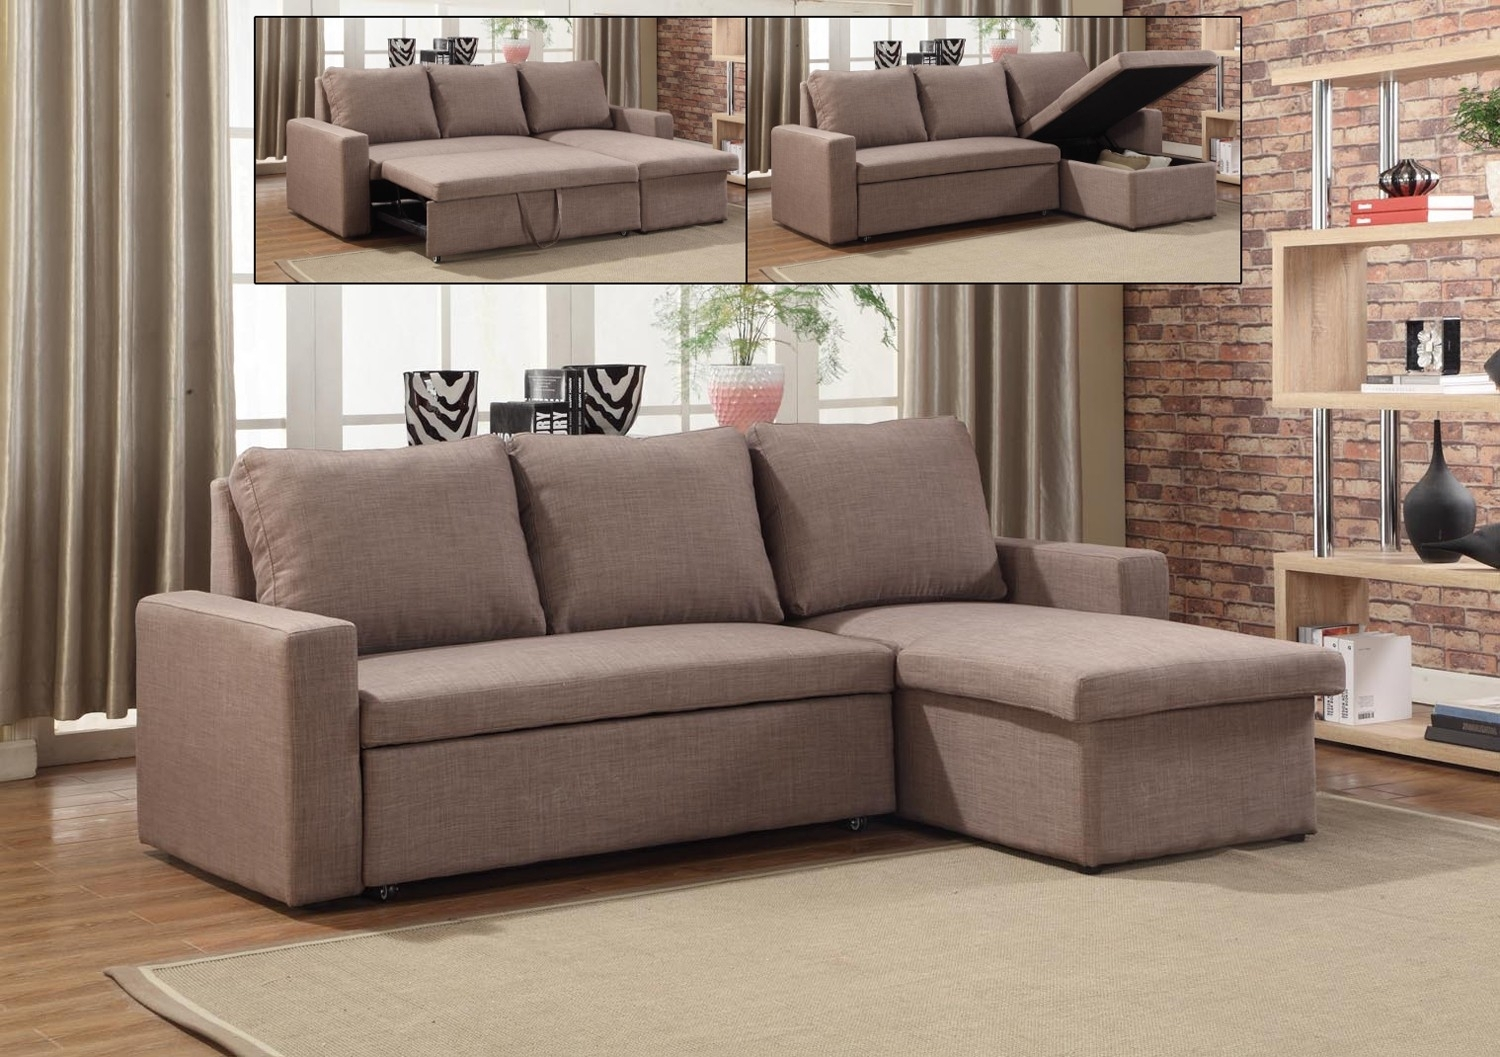 If 9001 Sectional Sofa Bed With Reversible Chaise – Lowest Price In Sectional Sofas At Brampton (View 8 of 10)